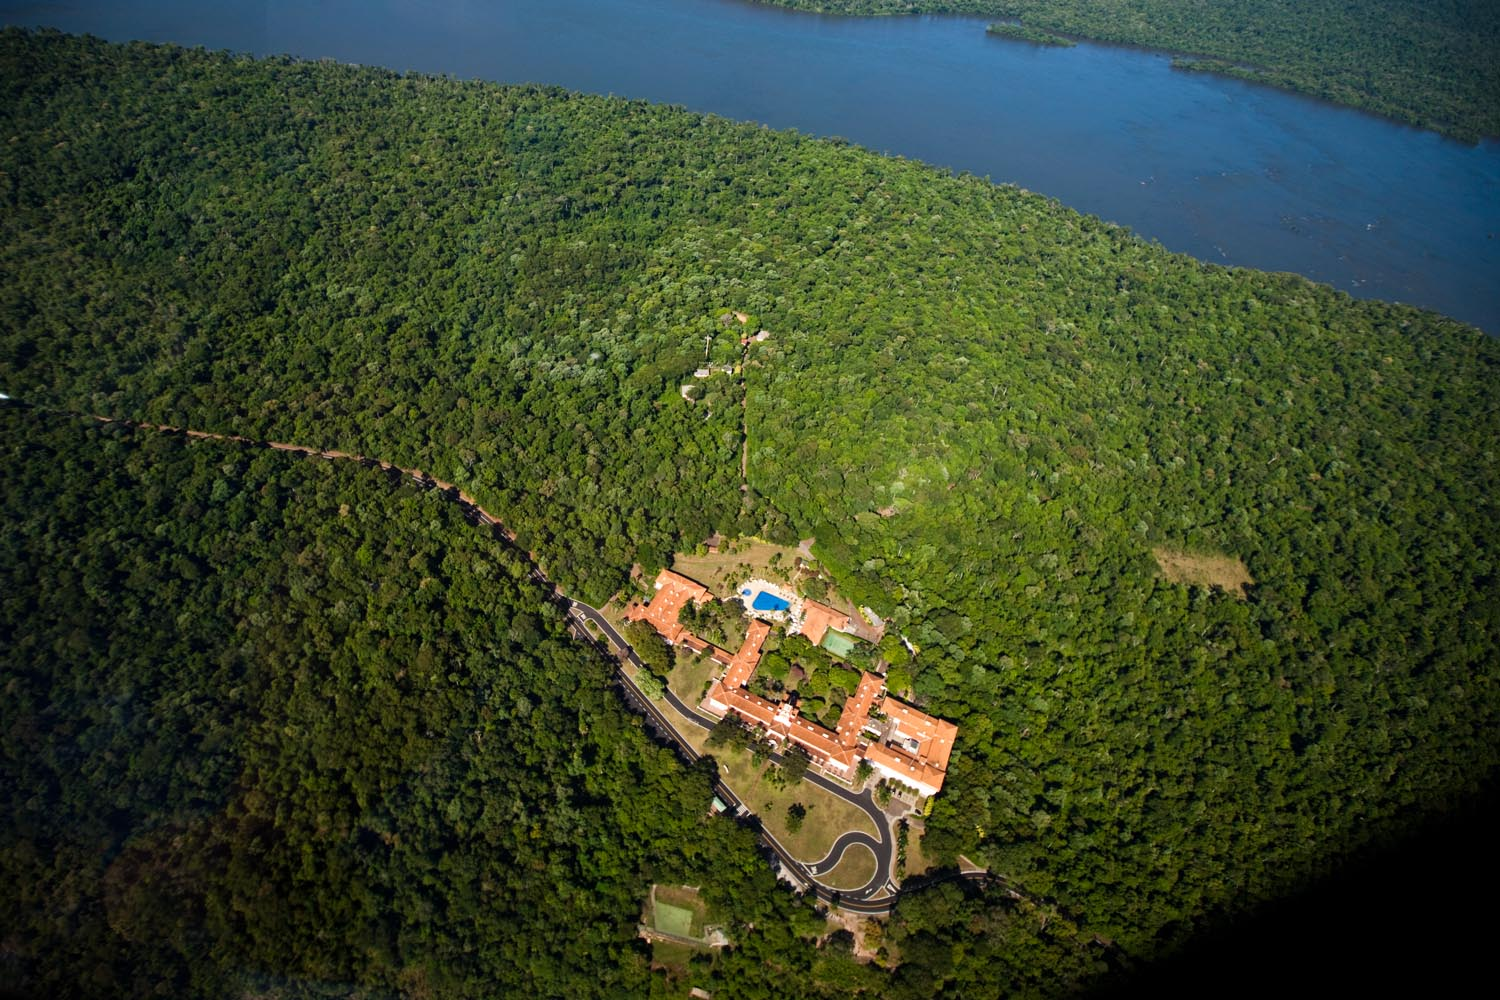 Aerial view of the Iguazu river and the visitor center